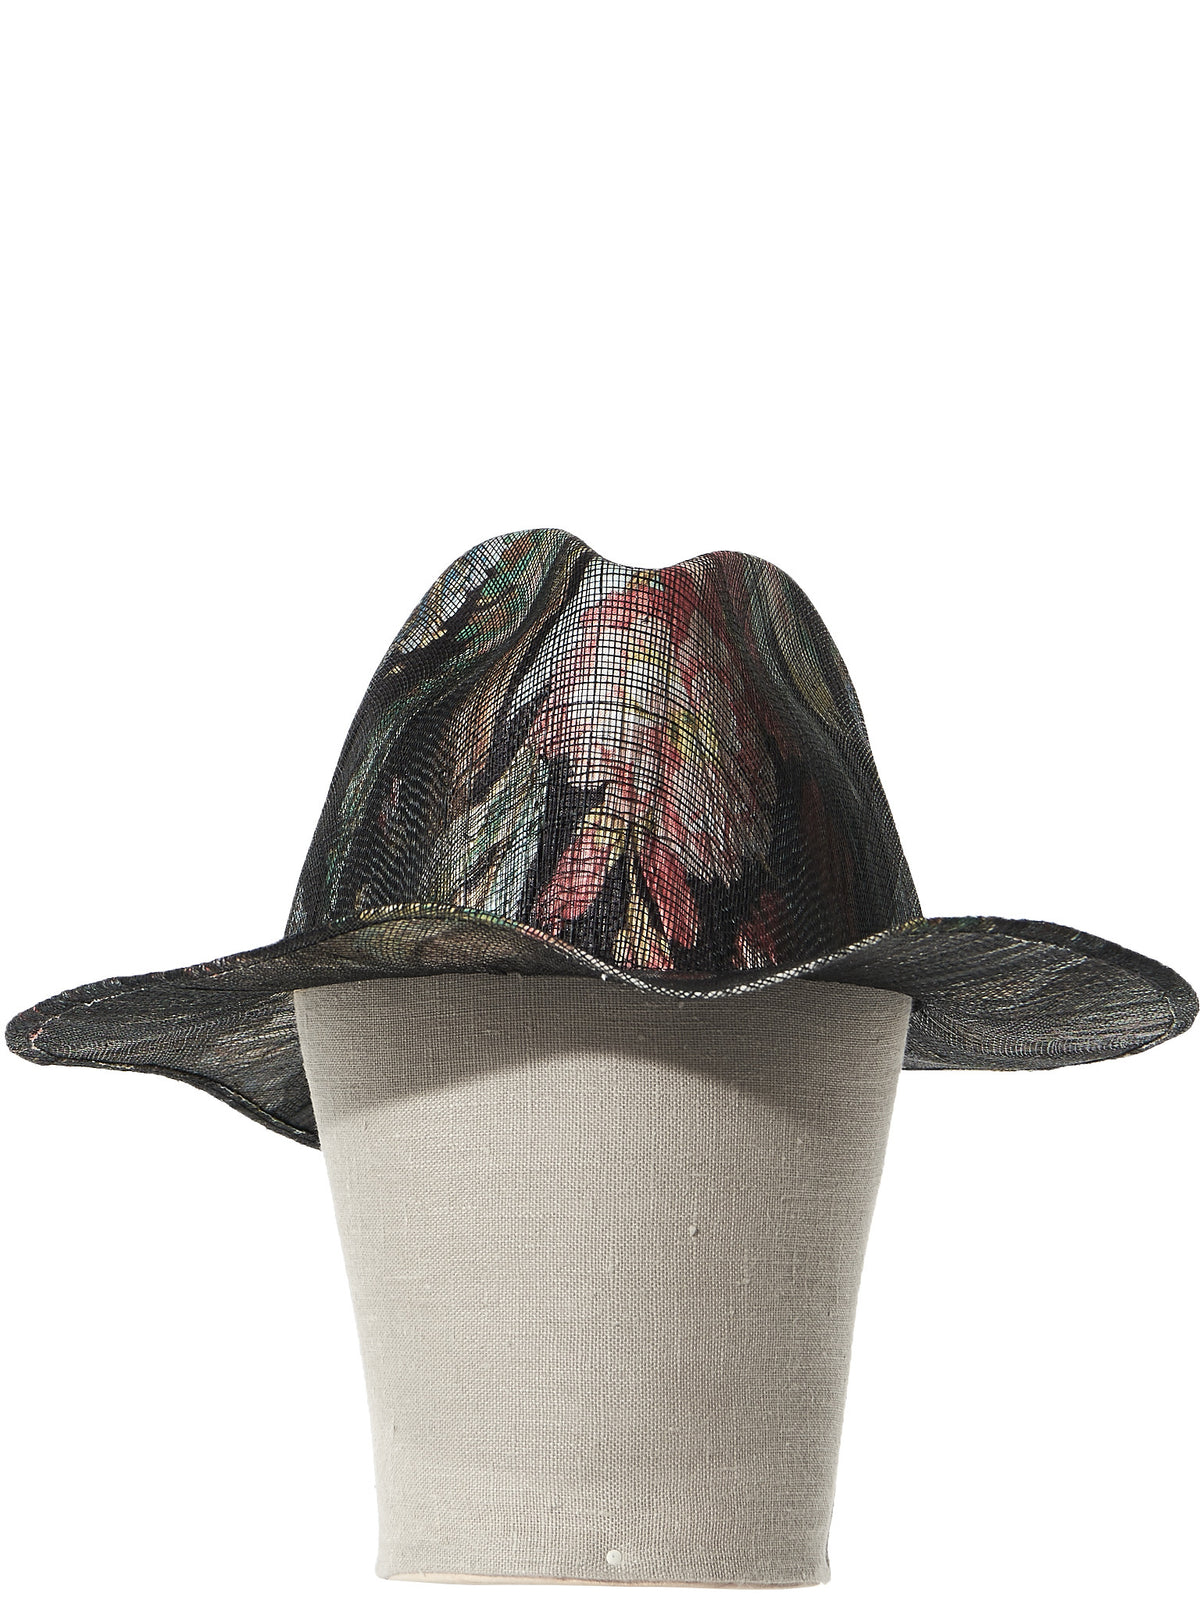 Printed Straw Hat (LAILA OPEN SISAL BLK EXOTICA 2) - H. Lorenzo